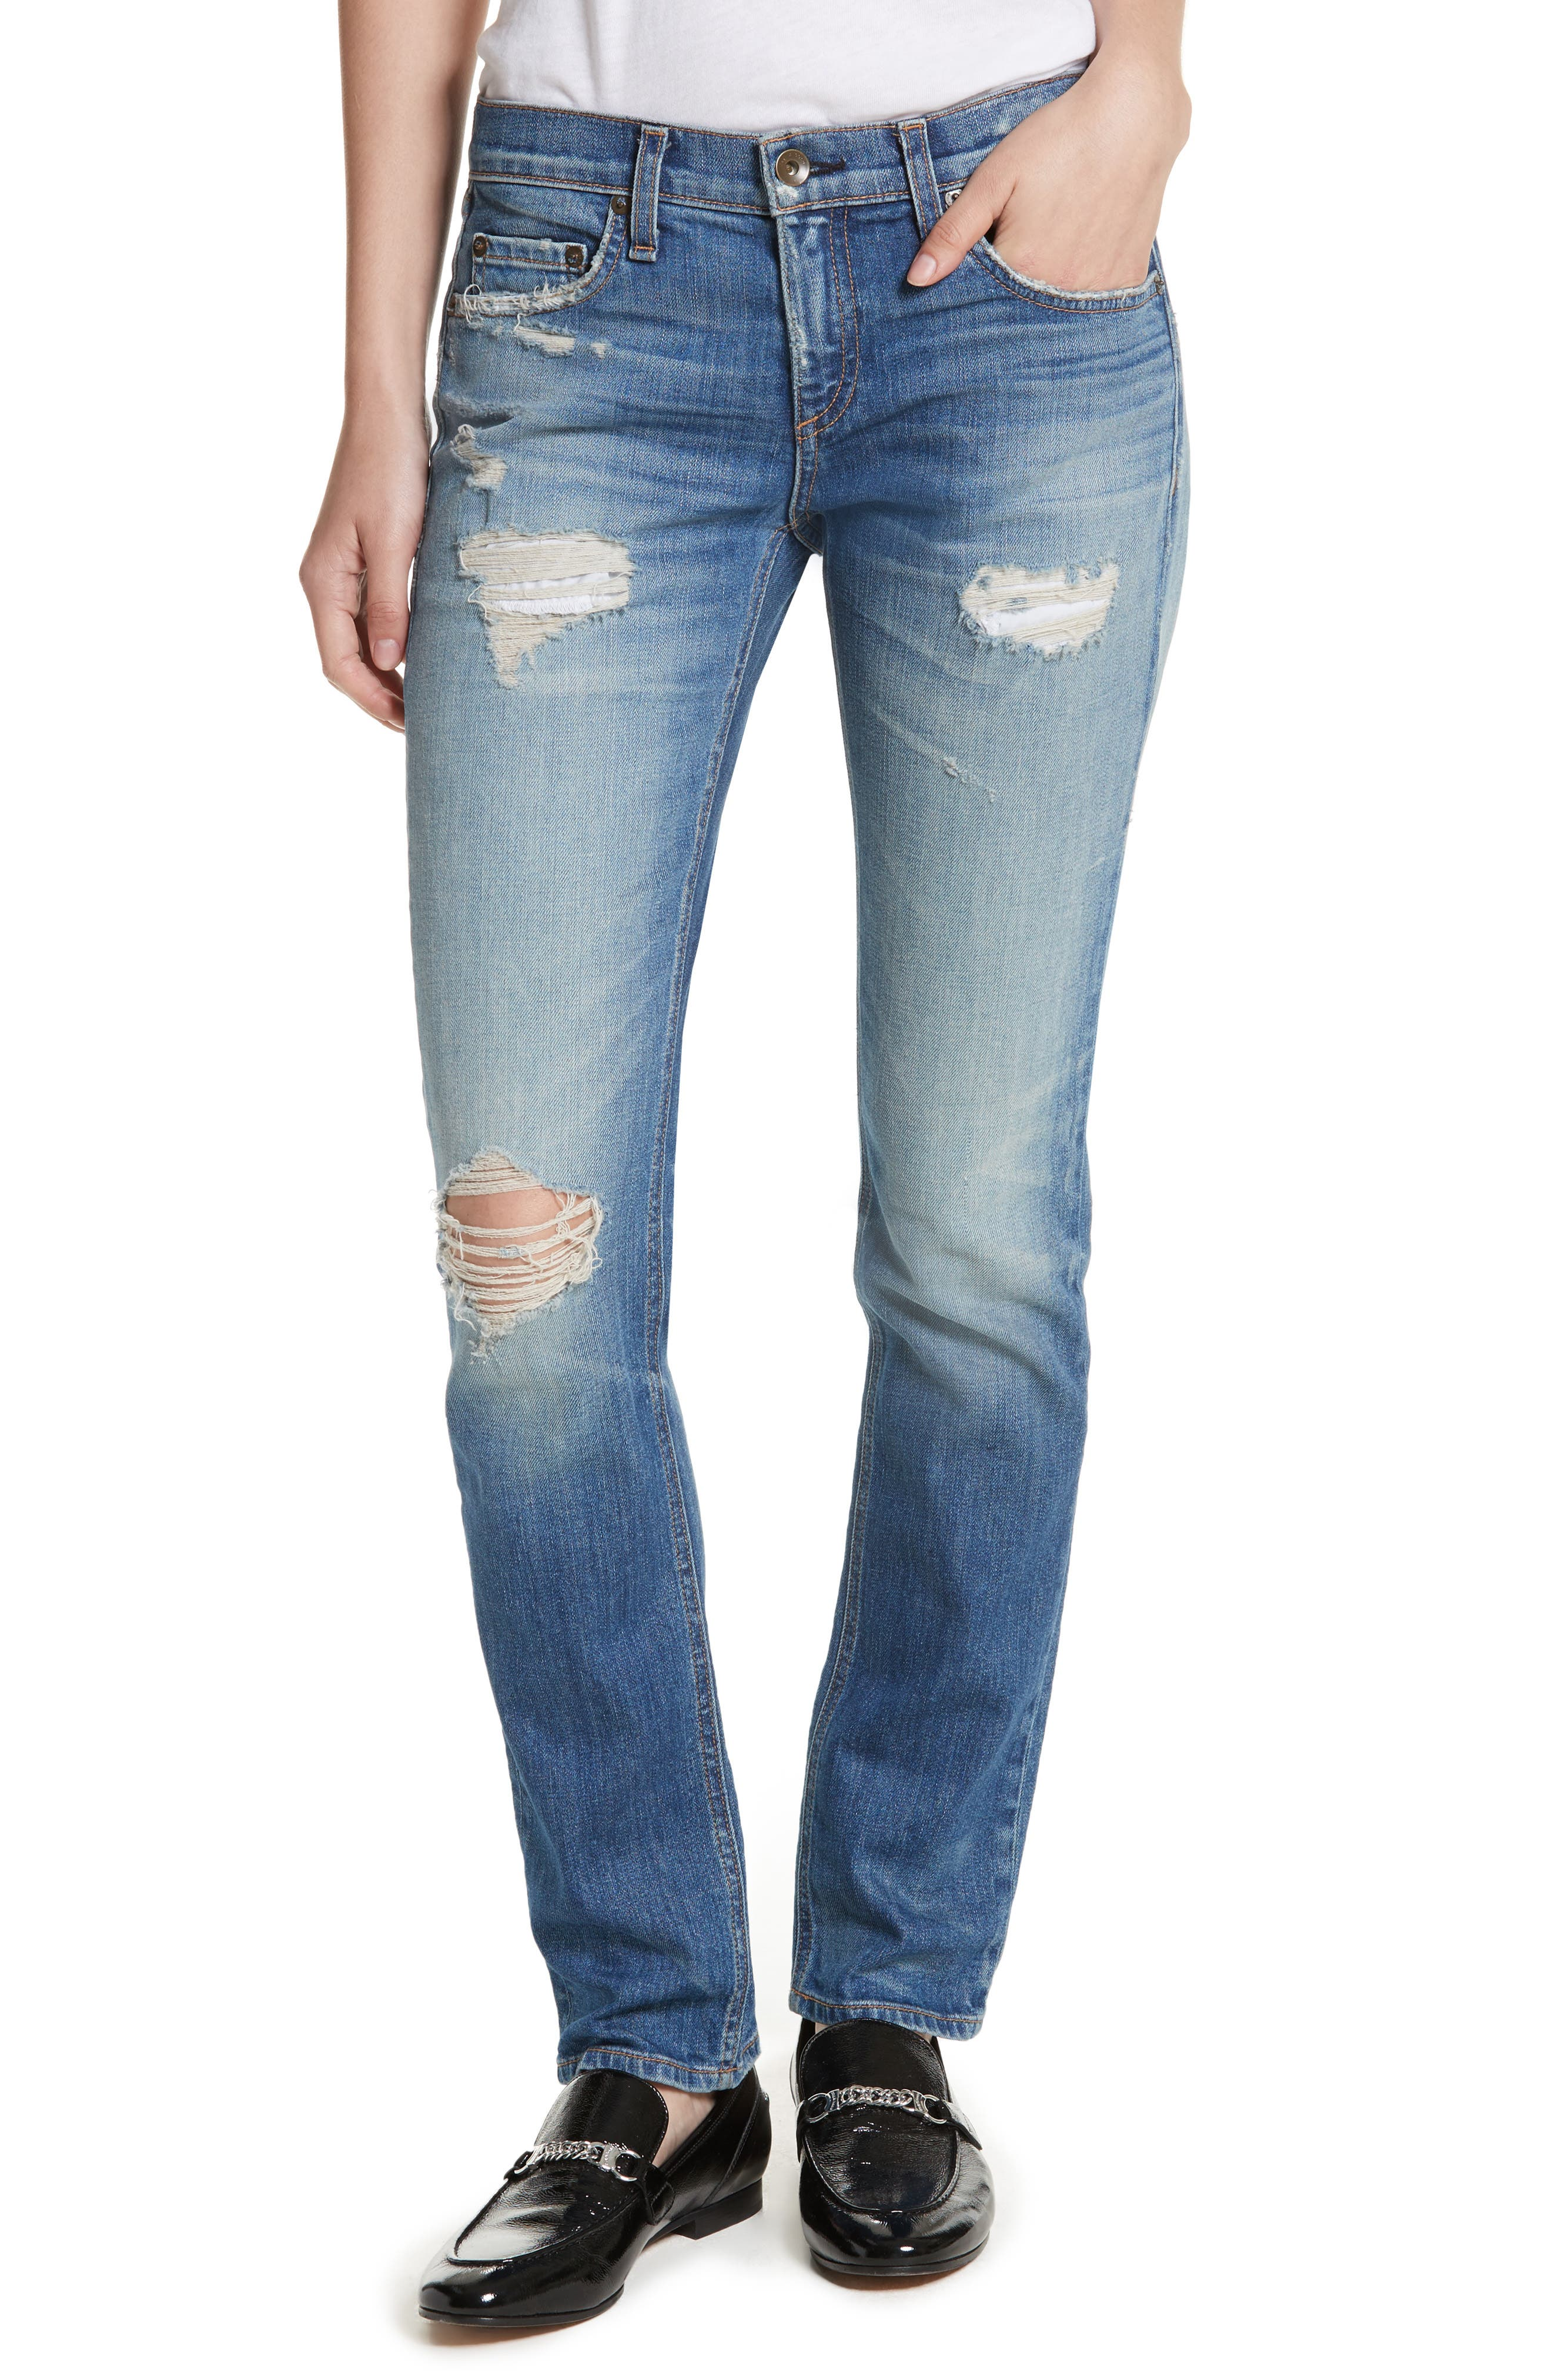 Dre Slim Boyfriend Jeans,                             Main thumbnail 1, color,                             420